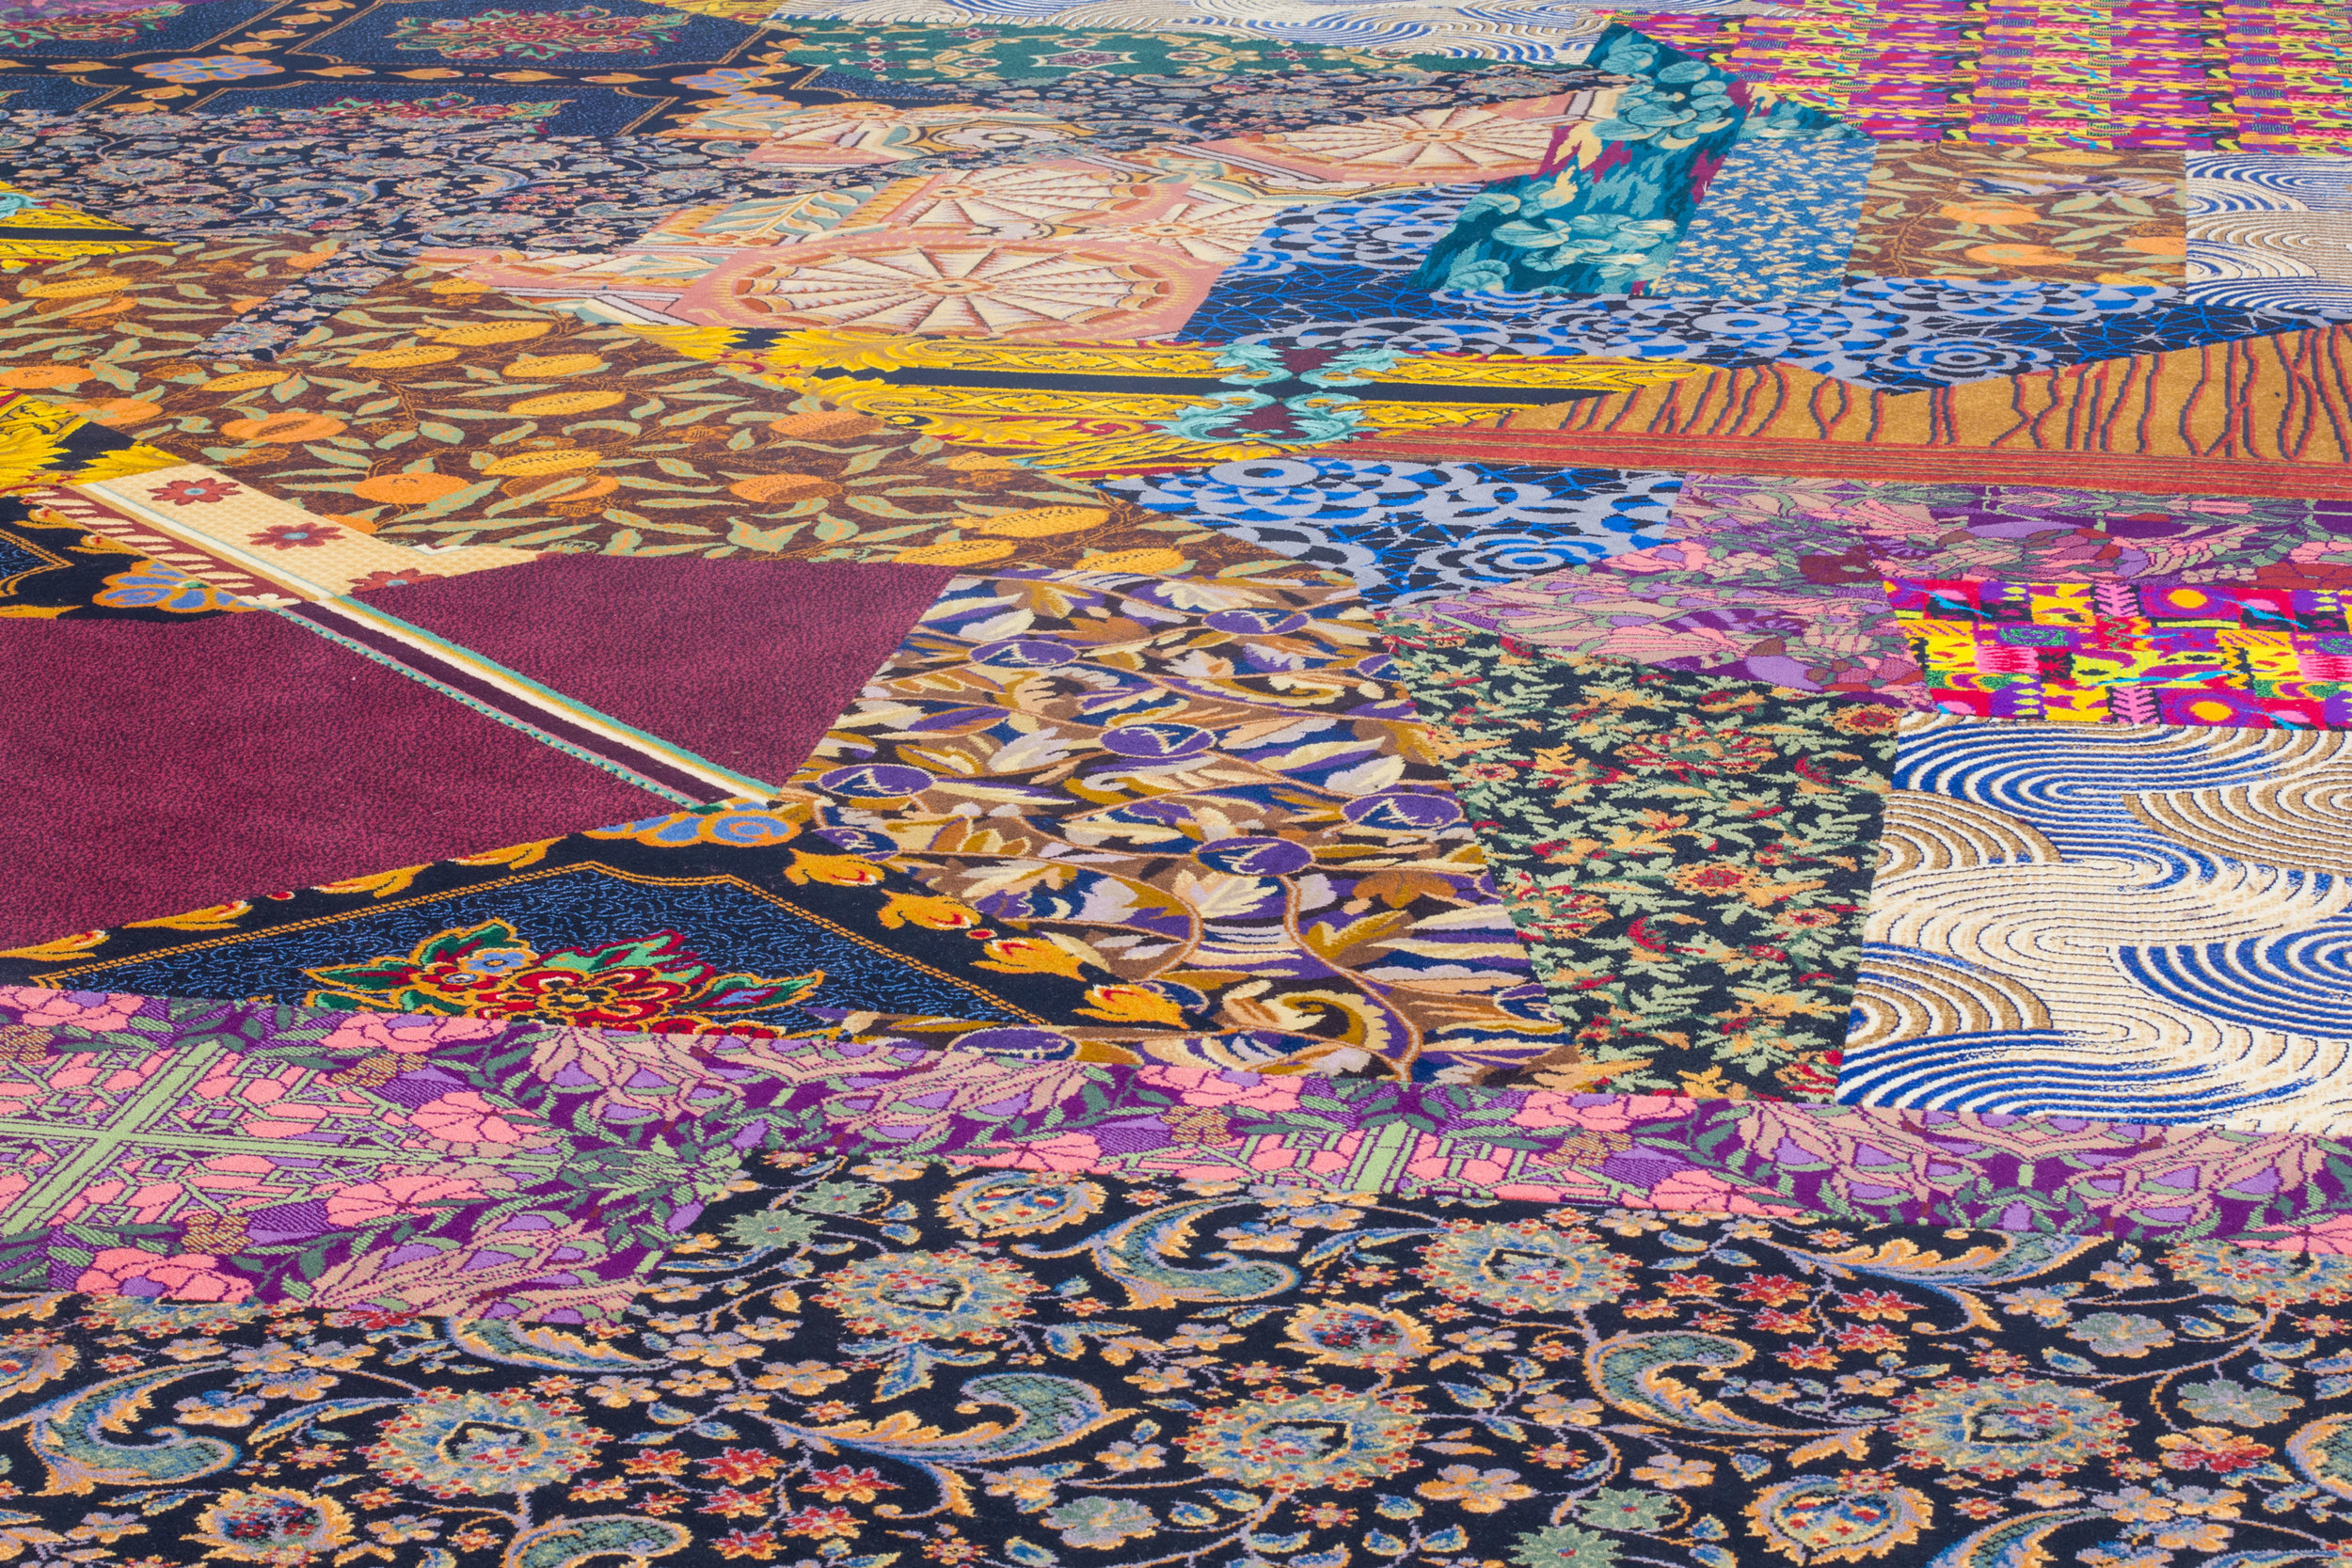 """CAYETANO FERRER. DETAIL, """"REMNANT RECOMPOSITION"""" (2014). CASINO CARPET FRAGMENTS AND SEAM TAPE. COURTESY THE ARTIST."""